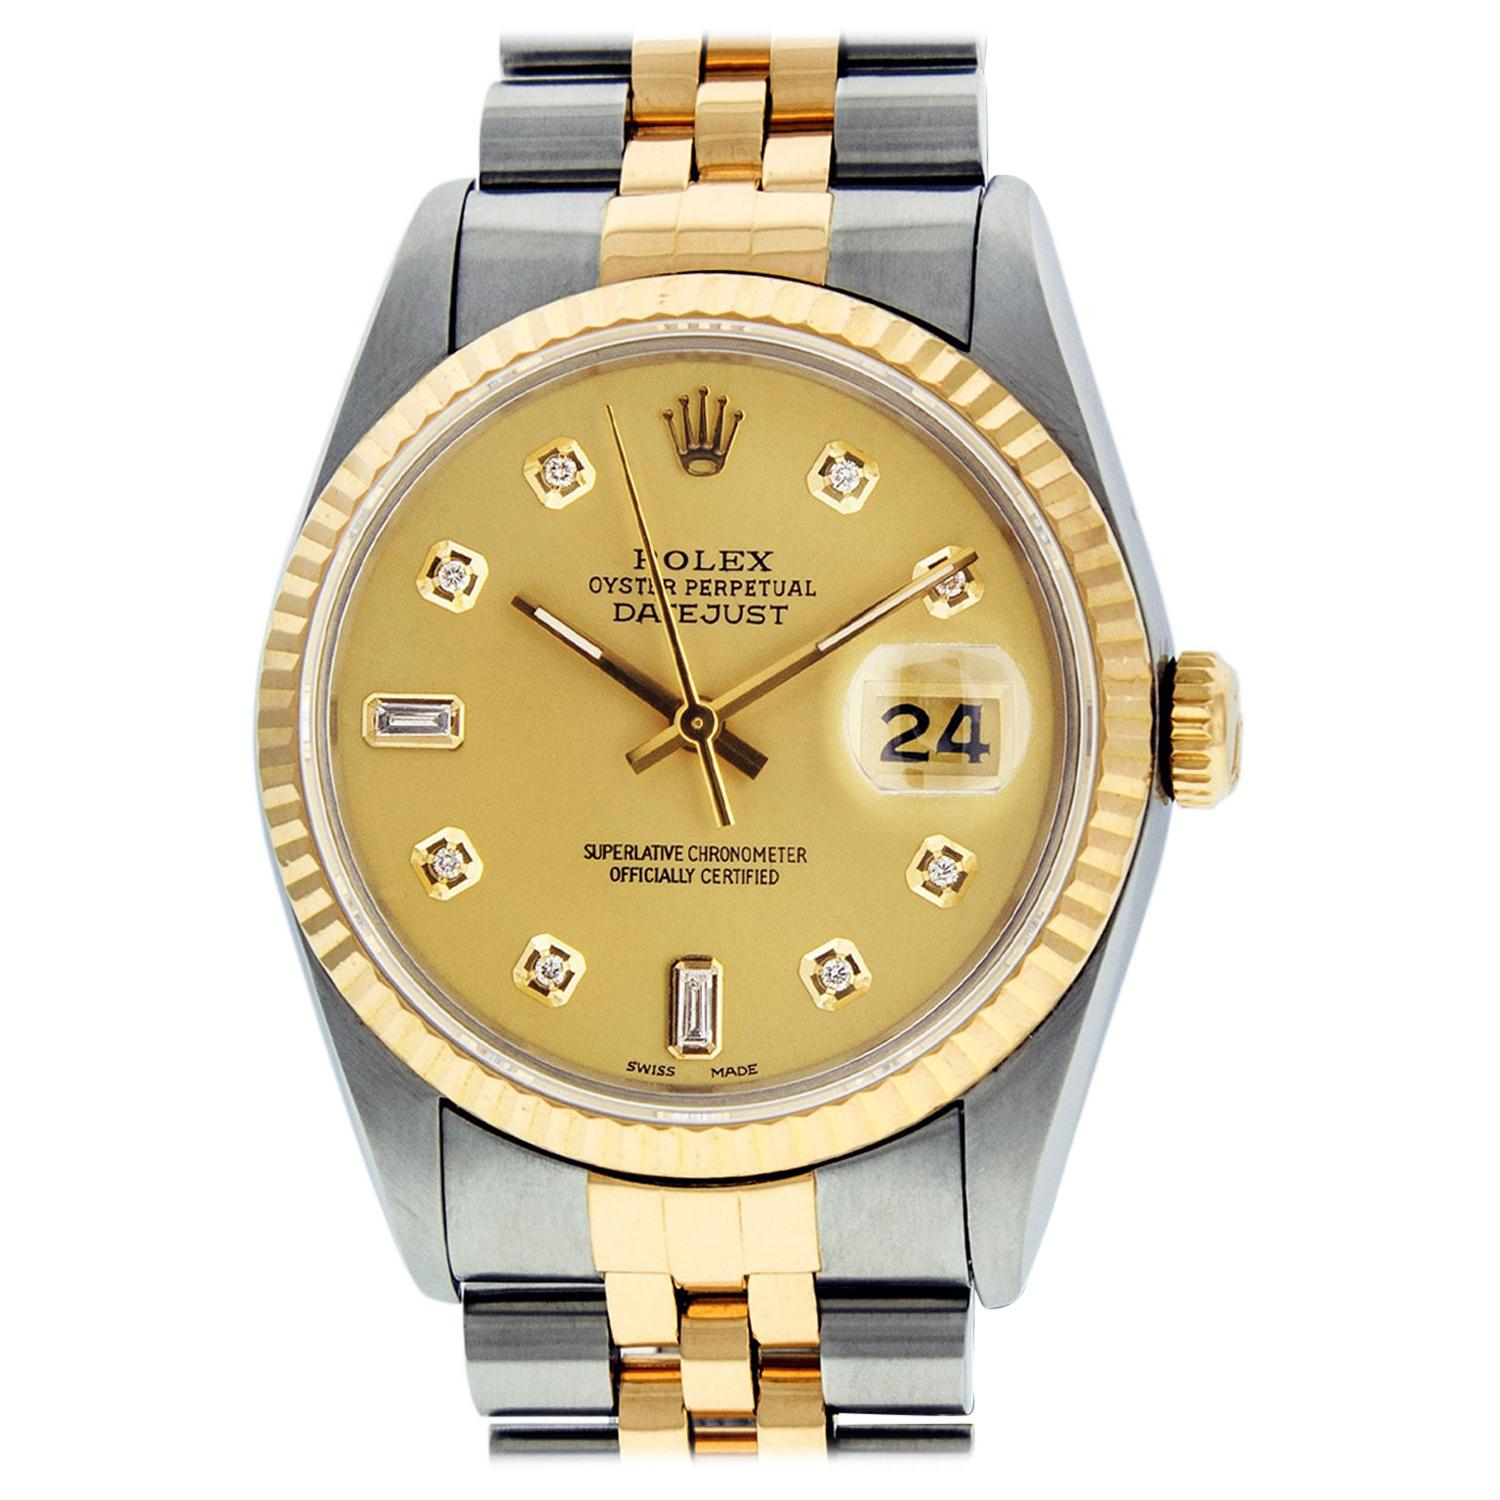 Rolex Men's Datejust SS and 18 Karat Yellow Gold Champagne Diamond Watch